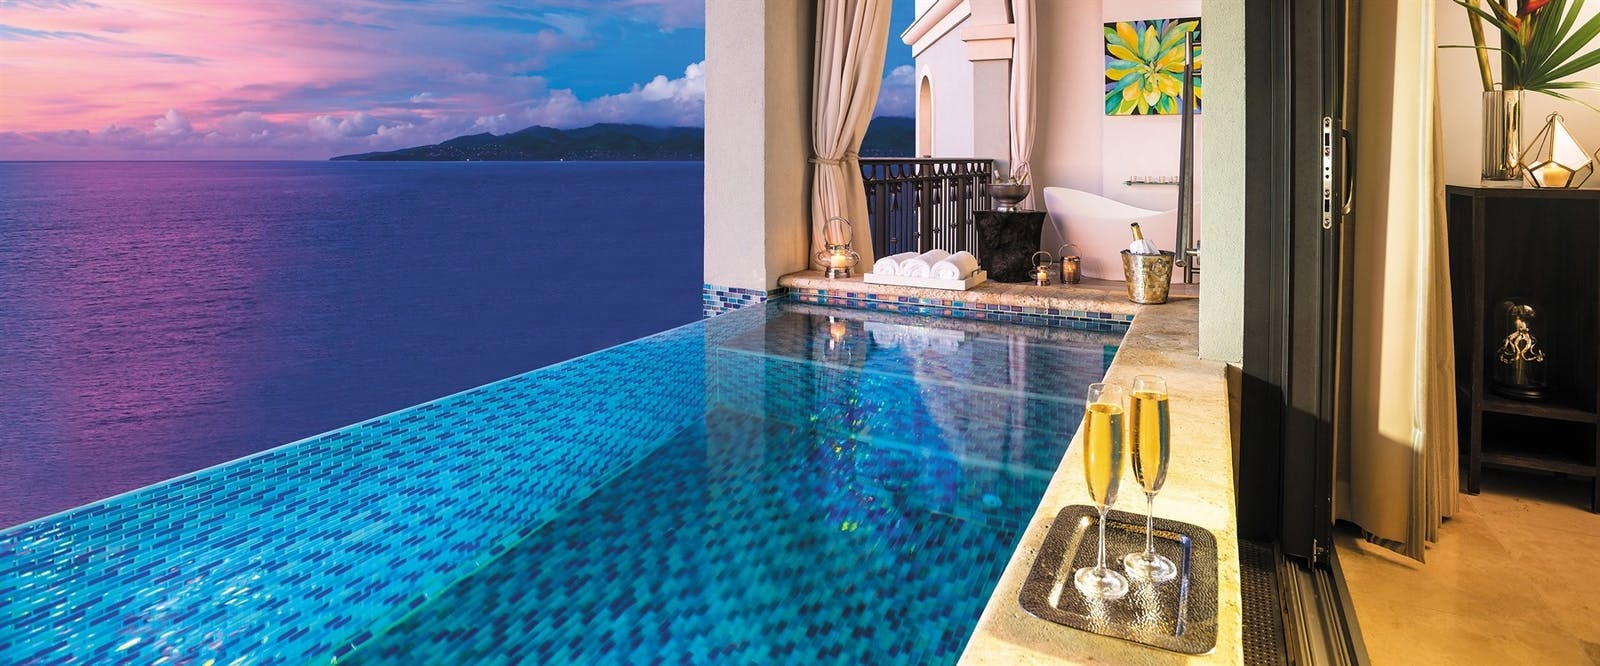 Private Infinity Pool at Sandals LaSource Grenada Resort & Spa, Grenada